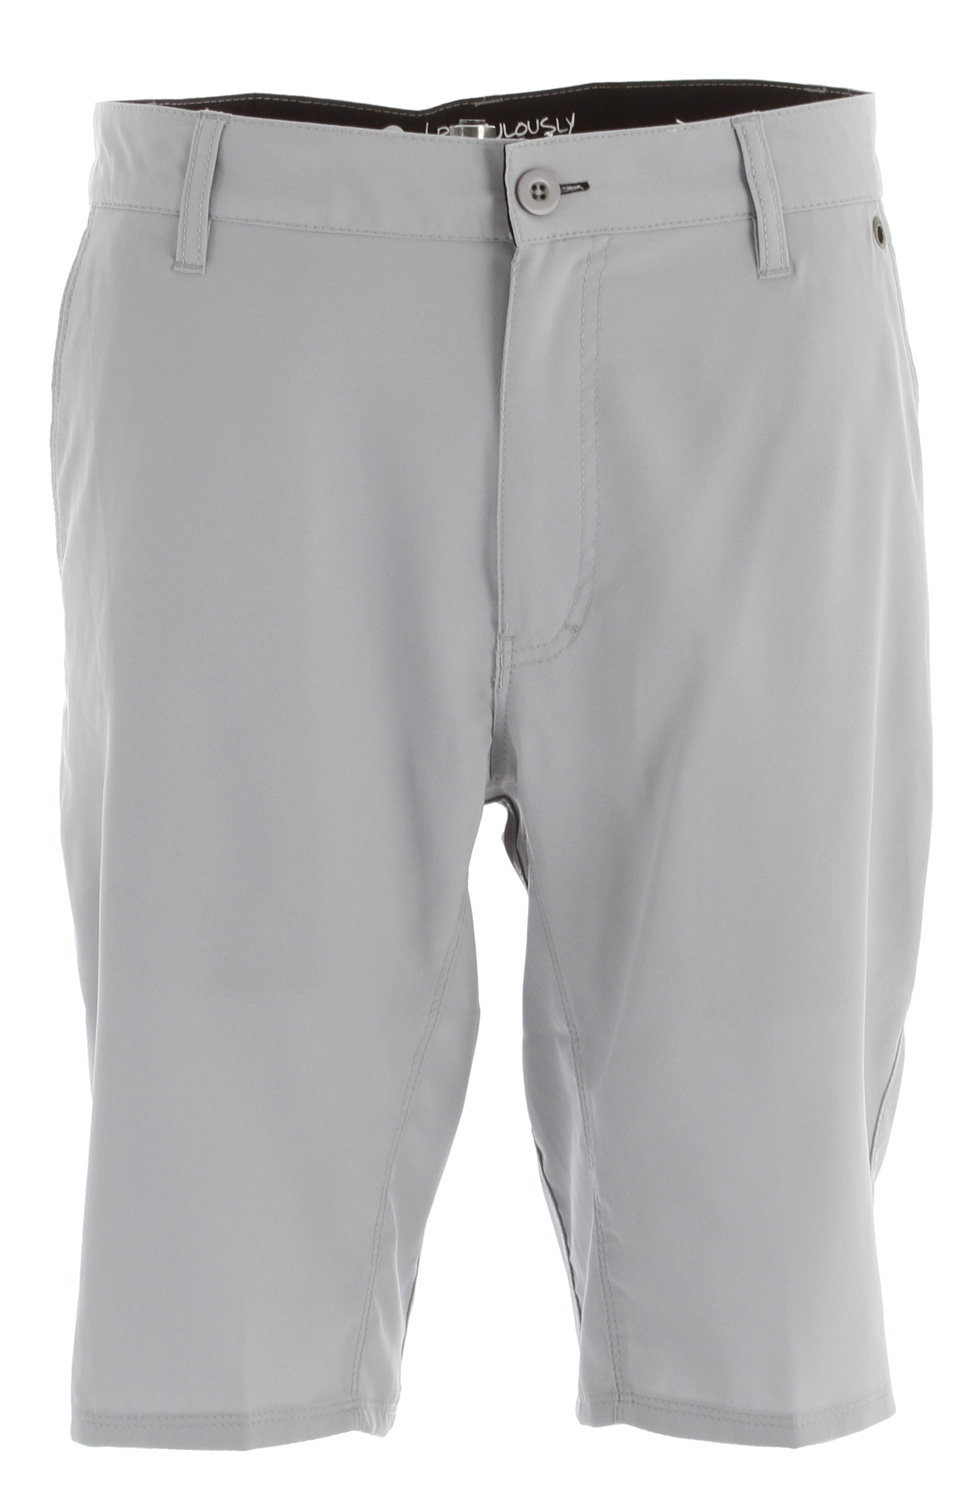 "Surf Key Features of the Reef Warm Water Shorts: 4 way mechanical stretch fabric 100% polyester ""land 2 sea"" surfable walkshort Mesh pocket bags Slim fit 21"" outseam - $35.95"